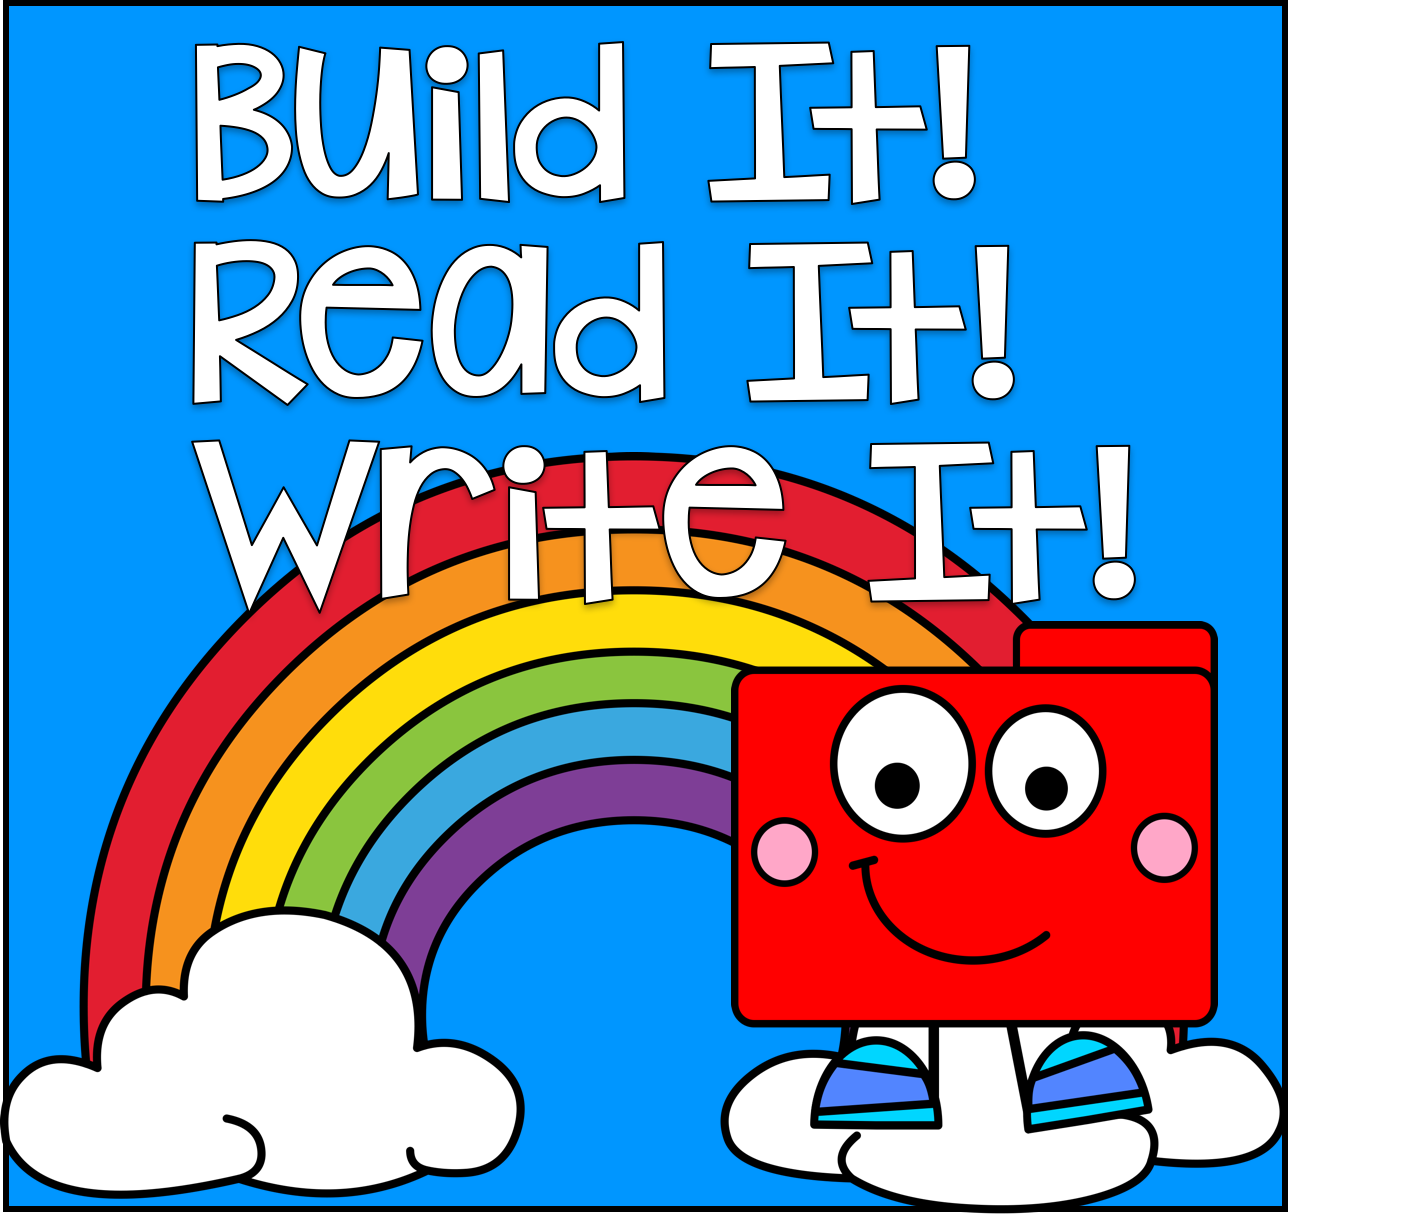 Build it! Read it! Write It!